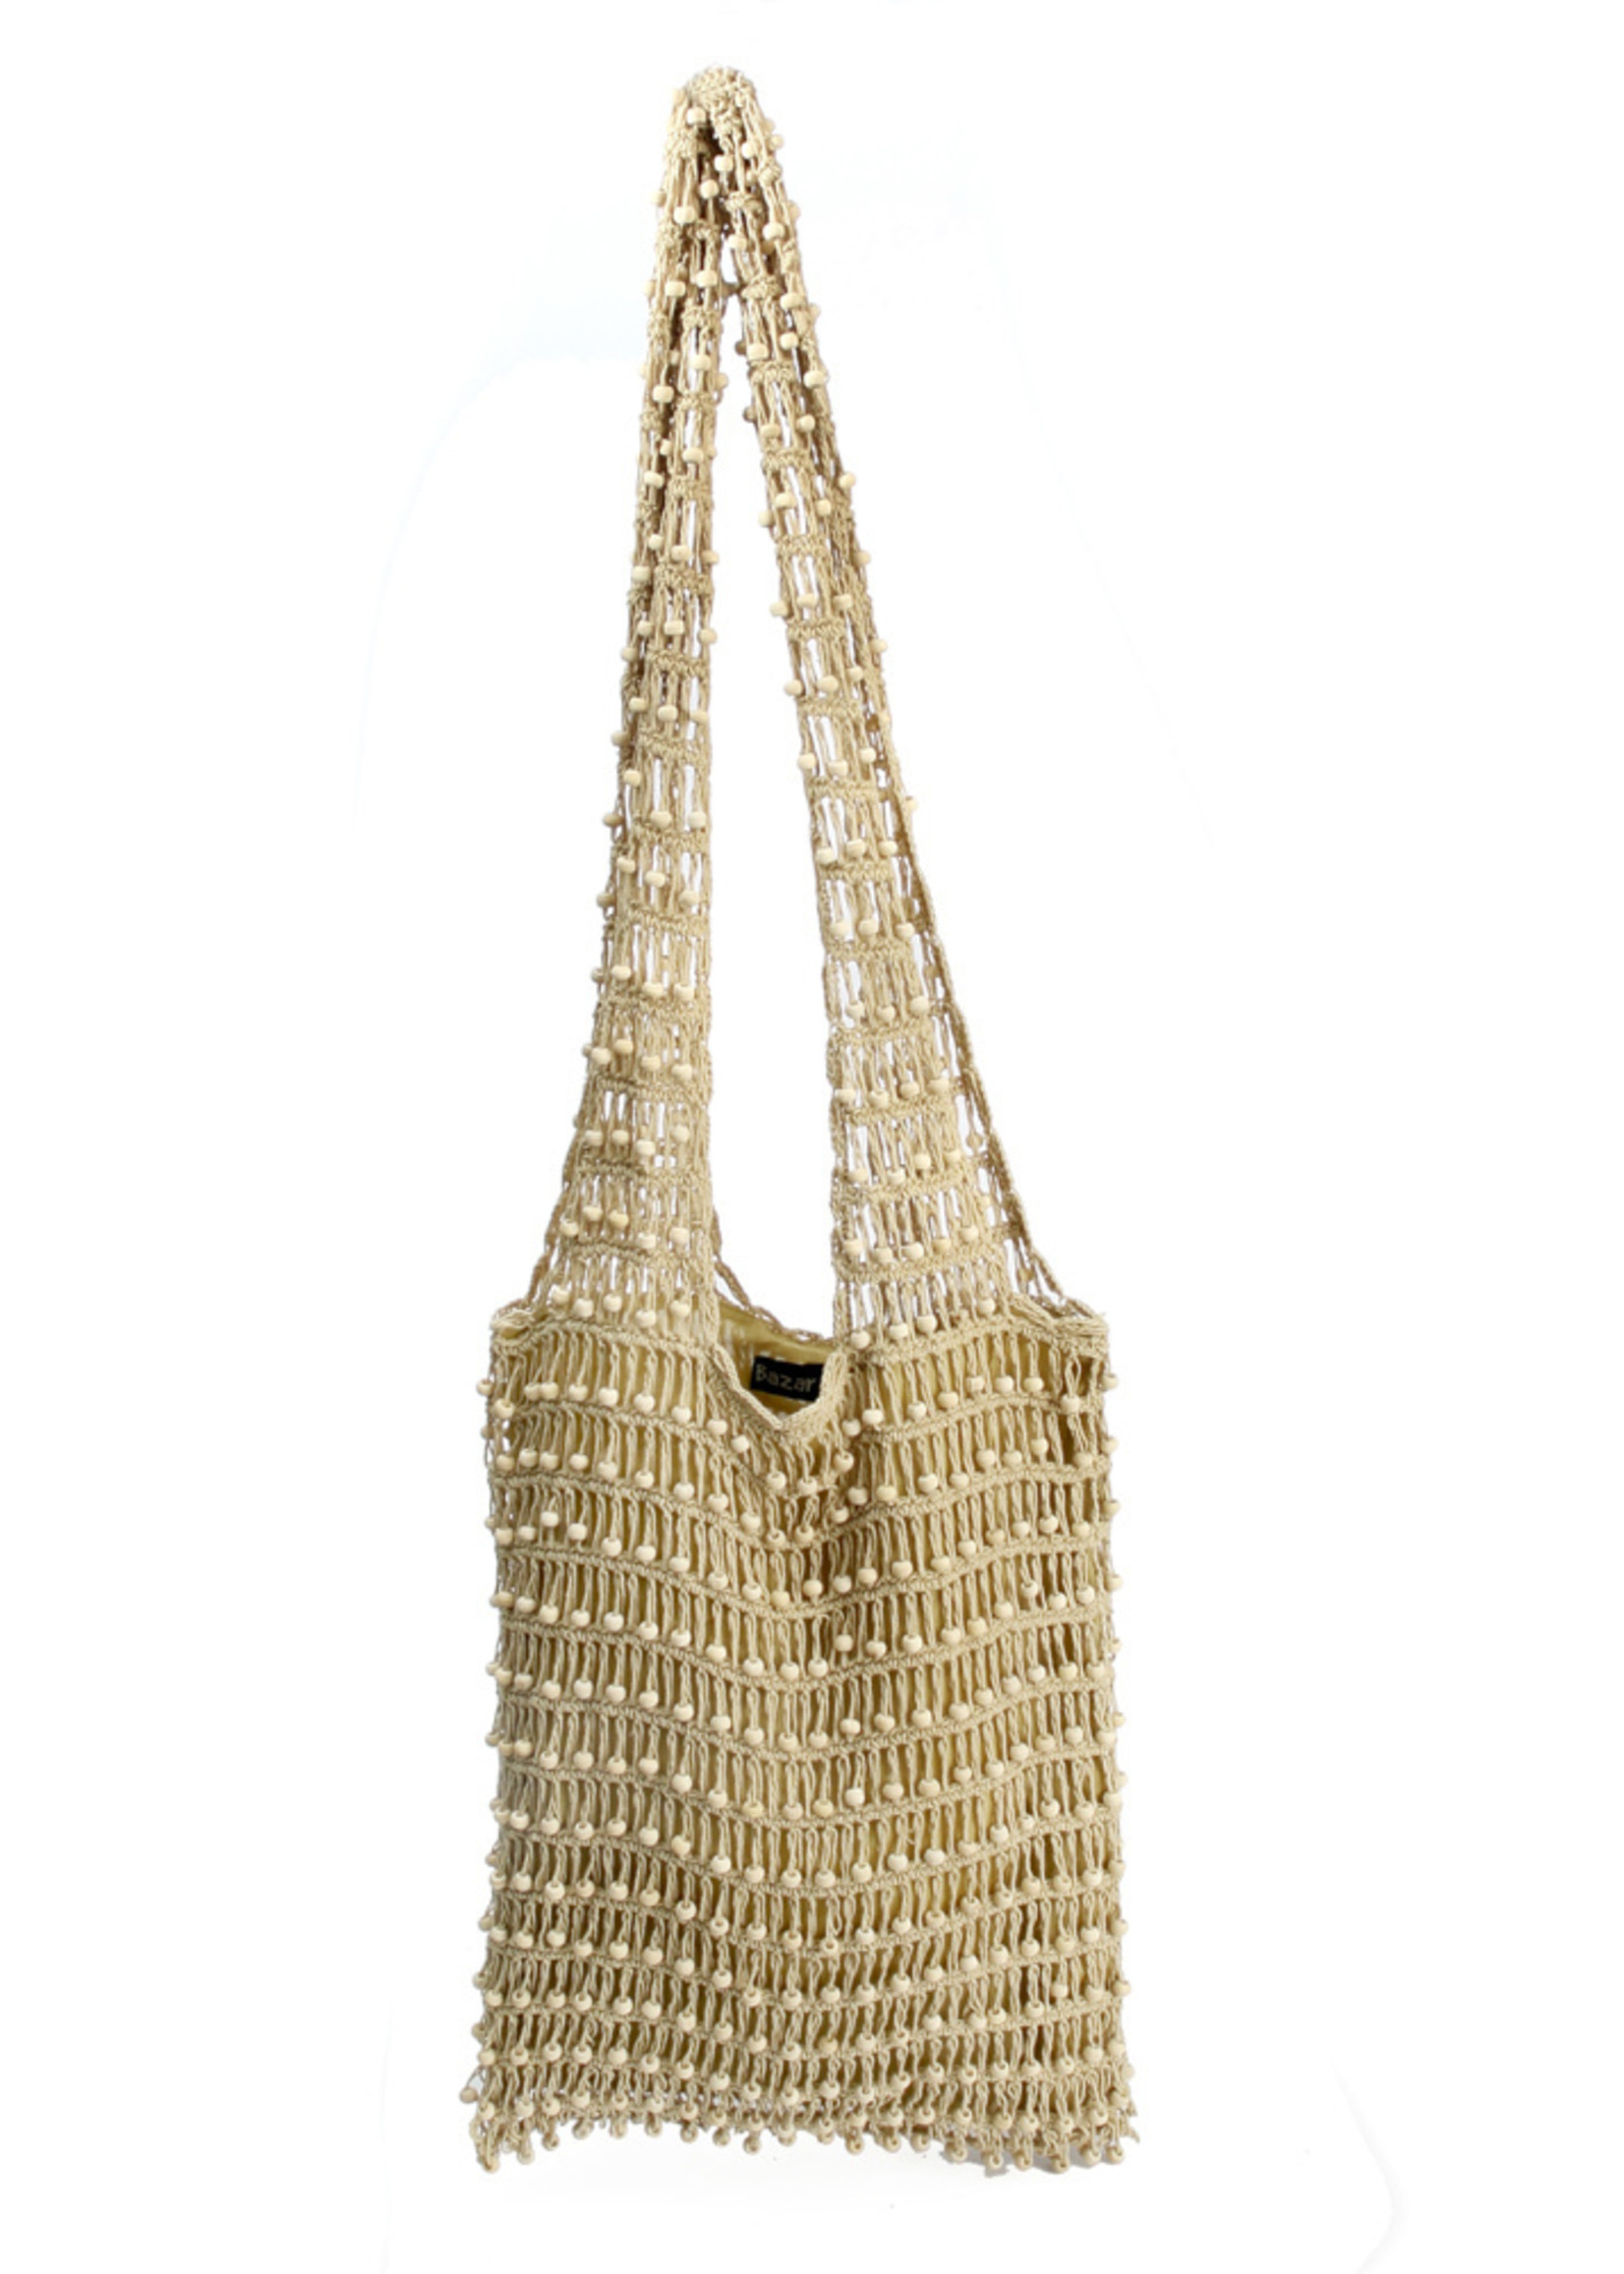 The Day in Day out Tote - Cream White